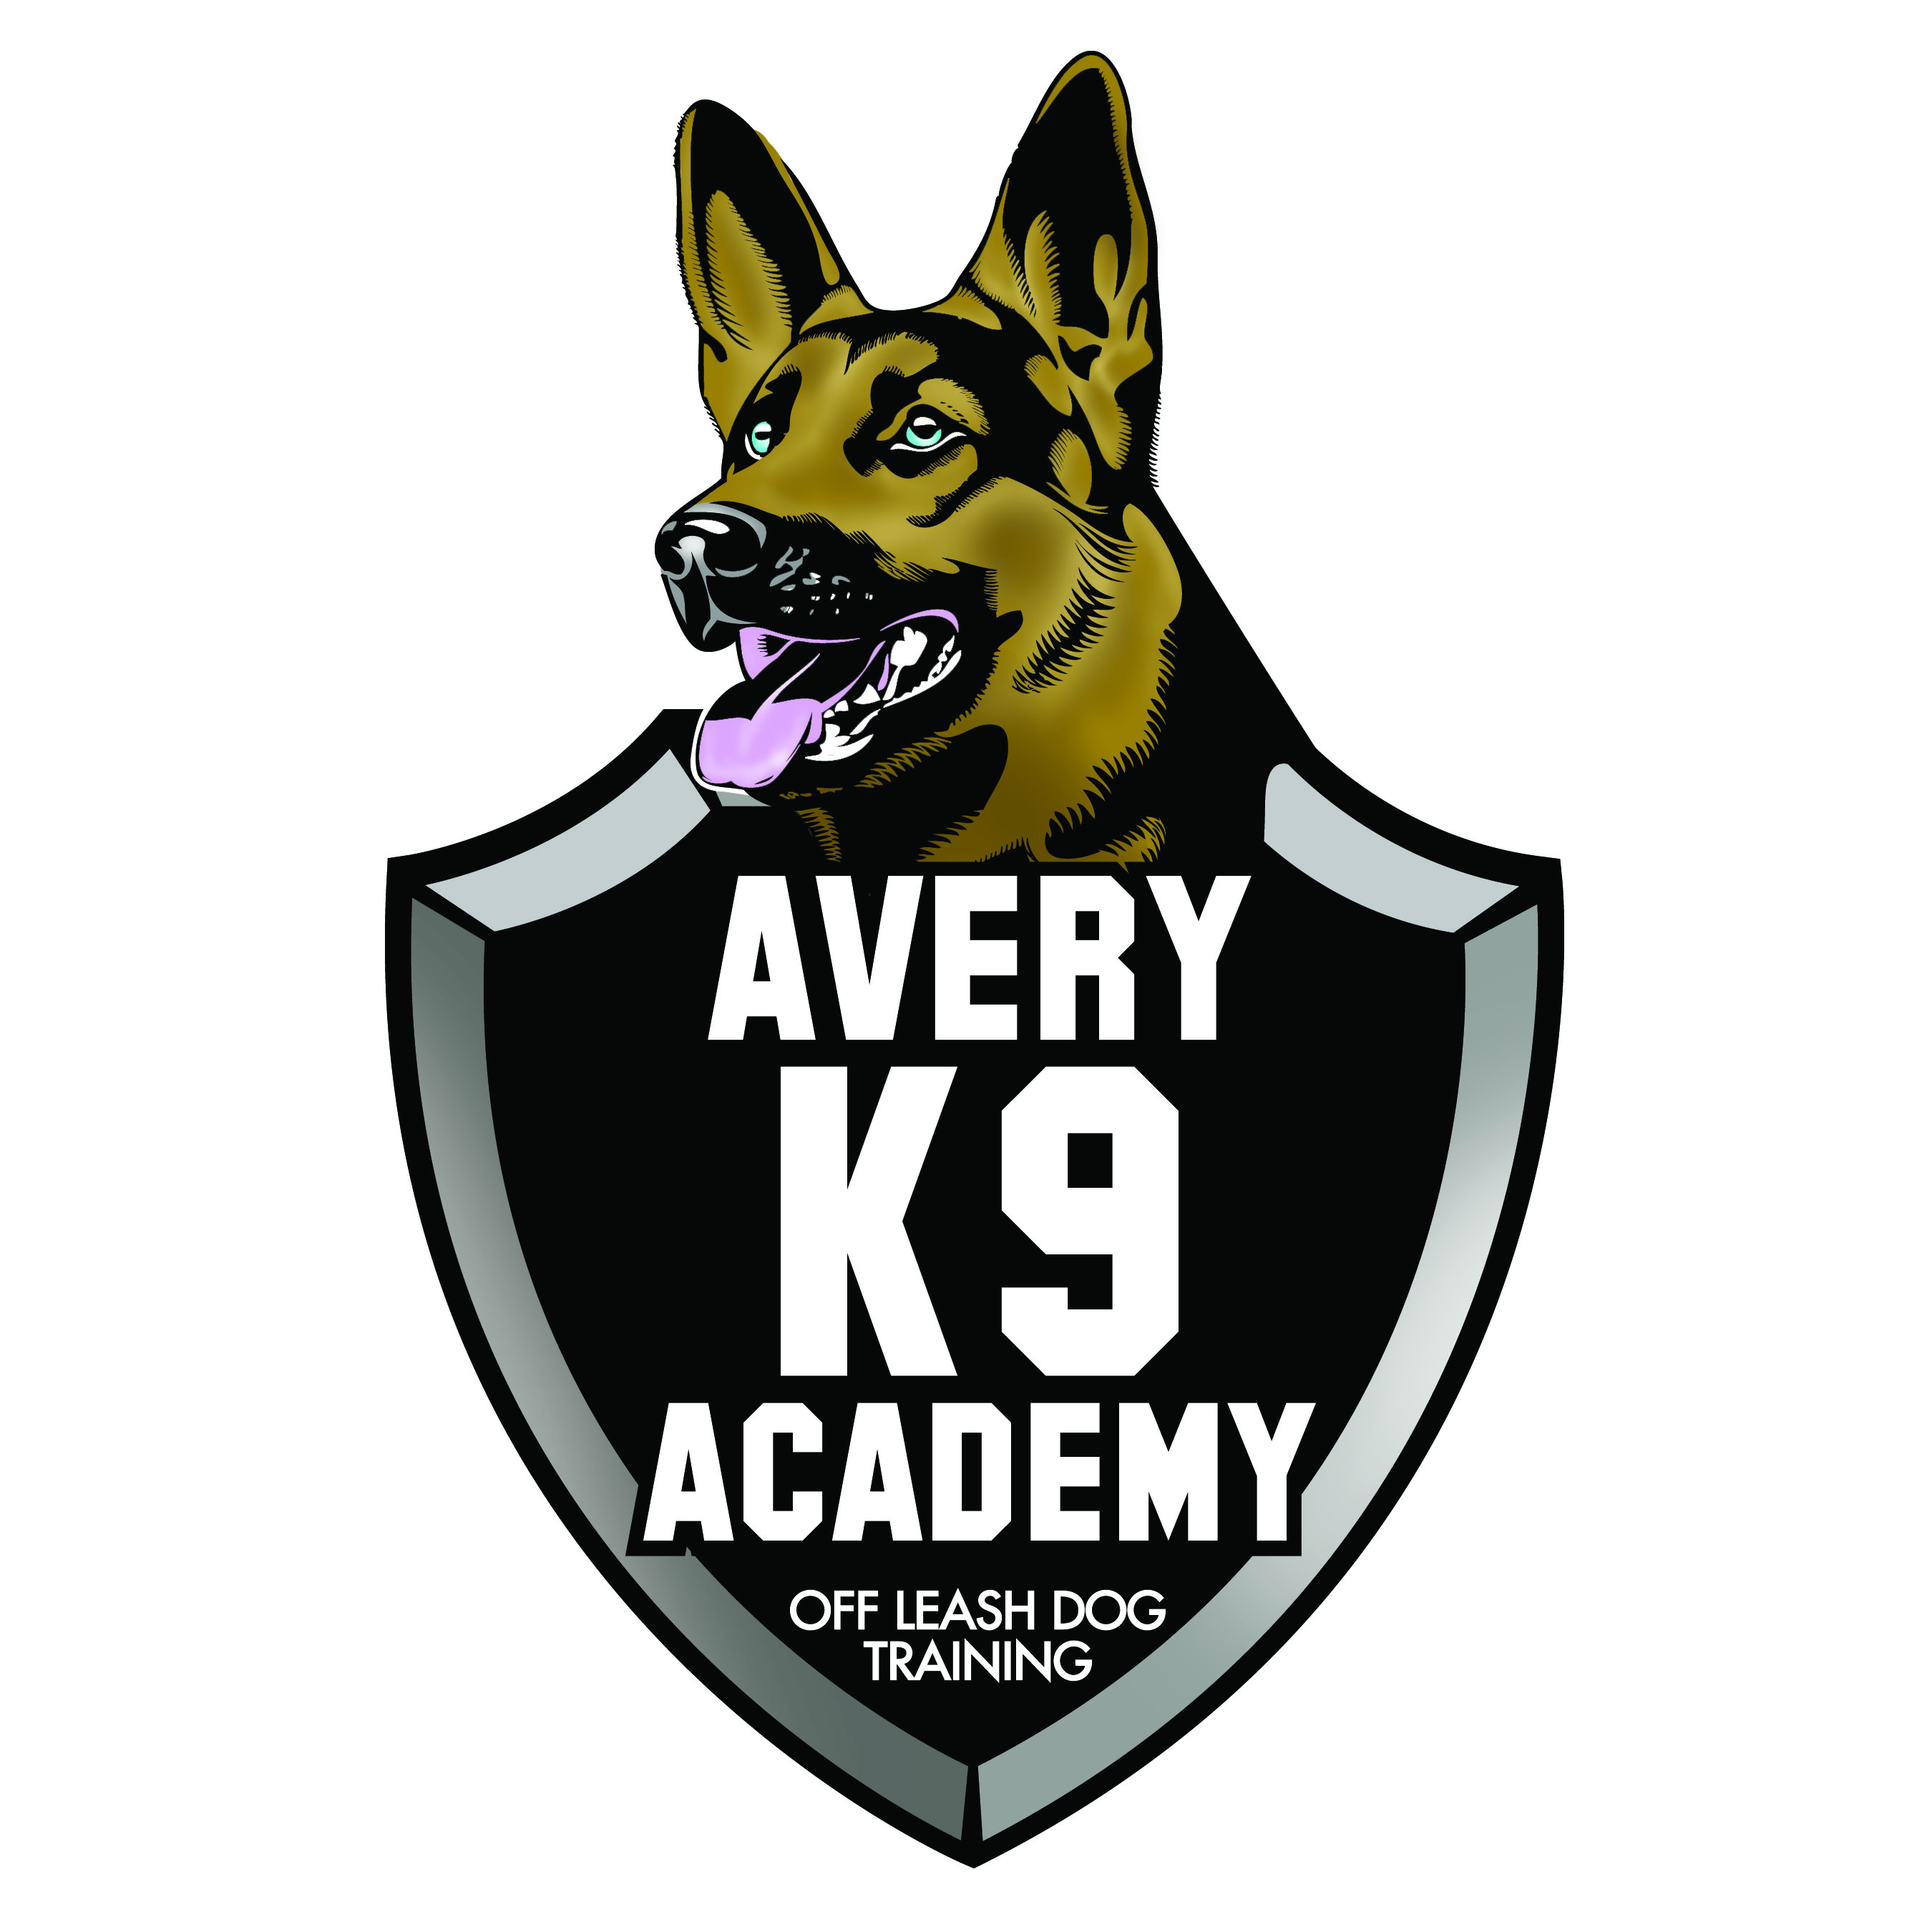 Avery K9 Academy | Bark Profile and Reviews